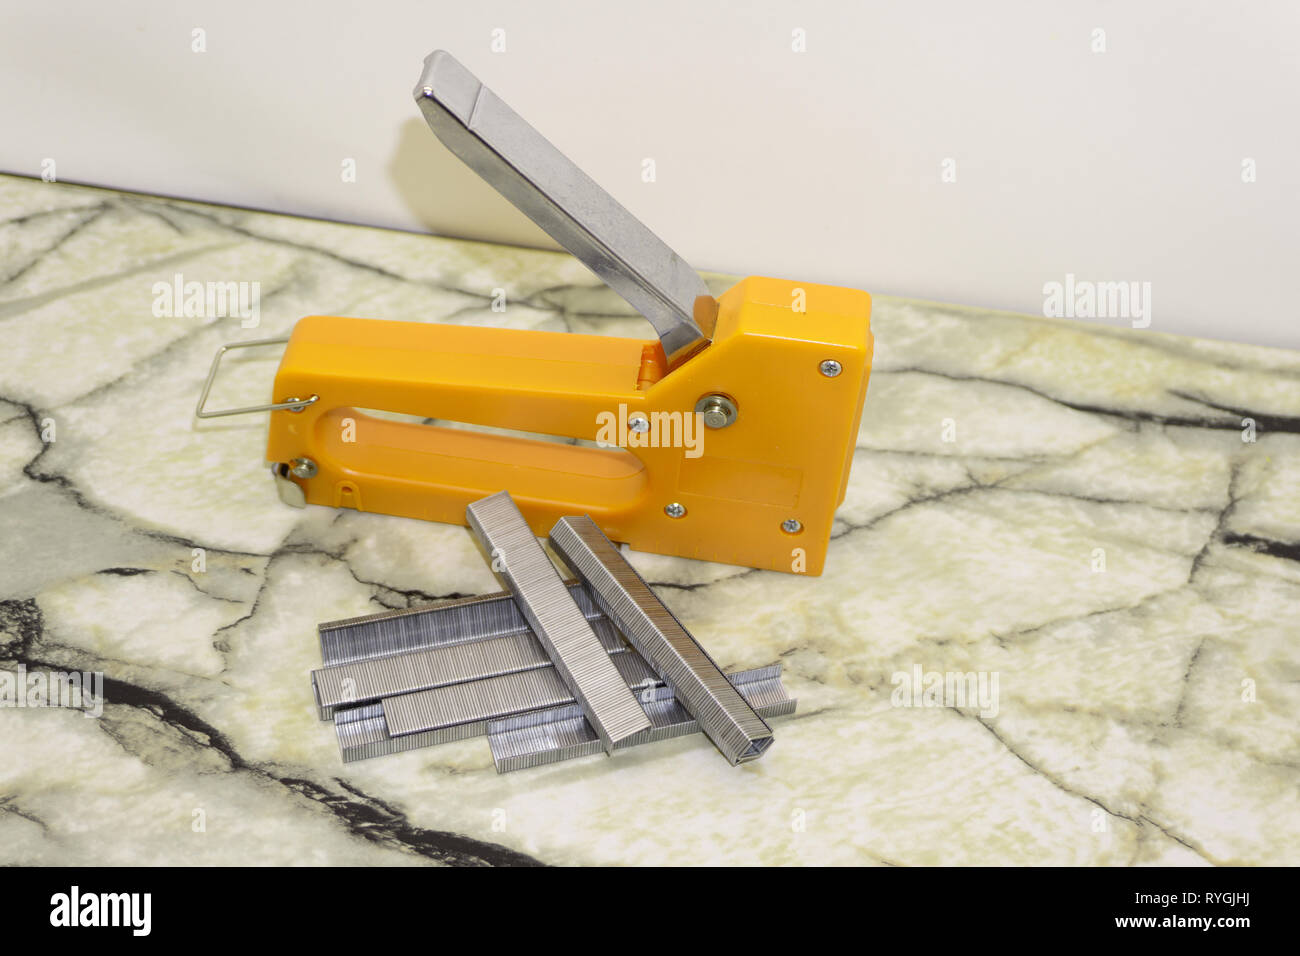 Large stapler and staples for construction work on white - Stock Image